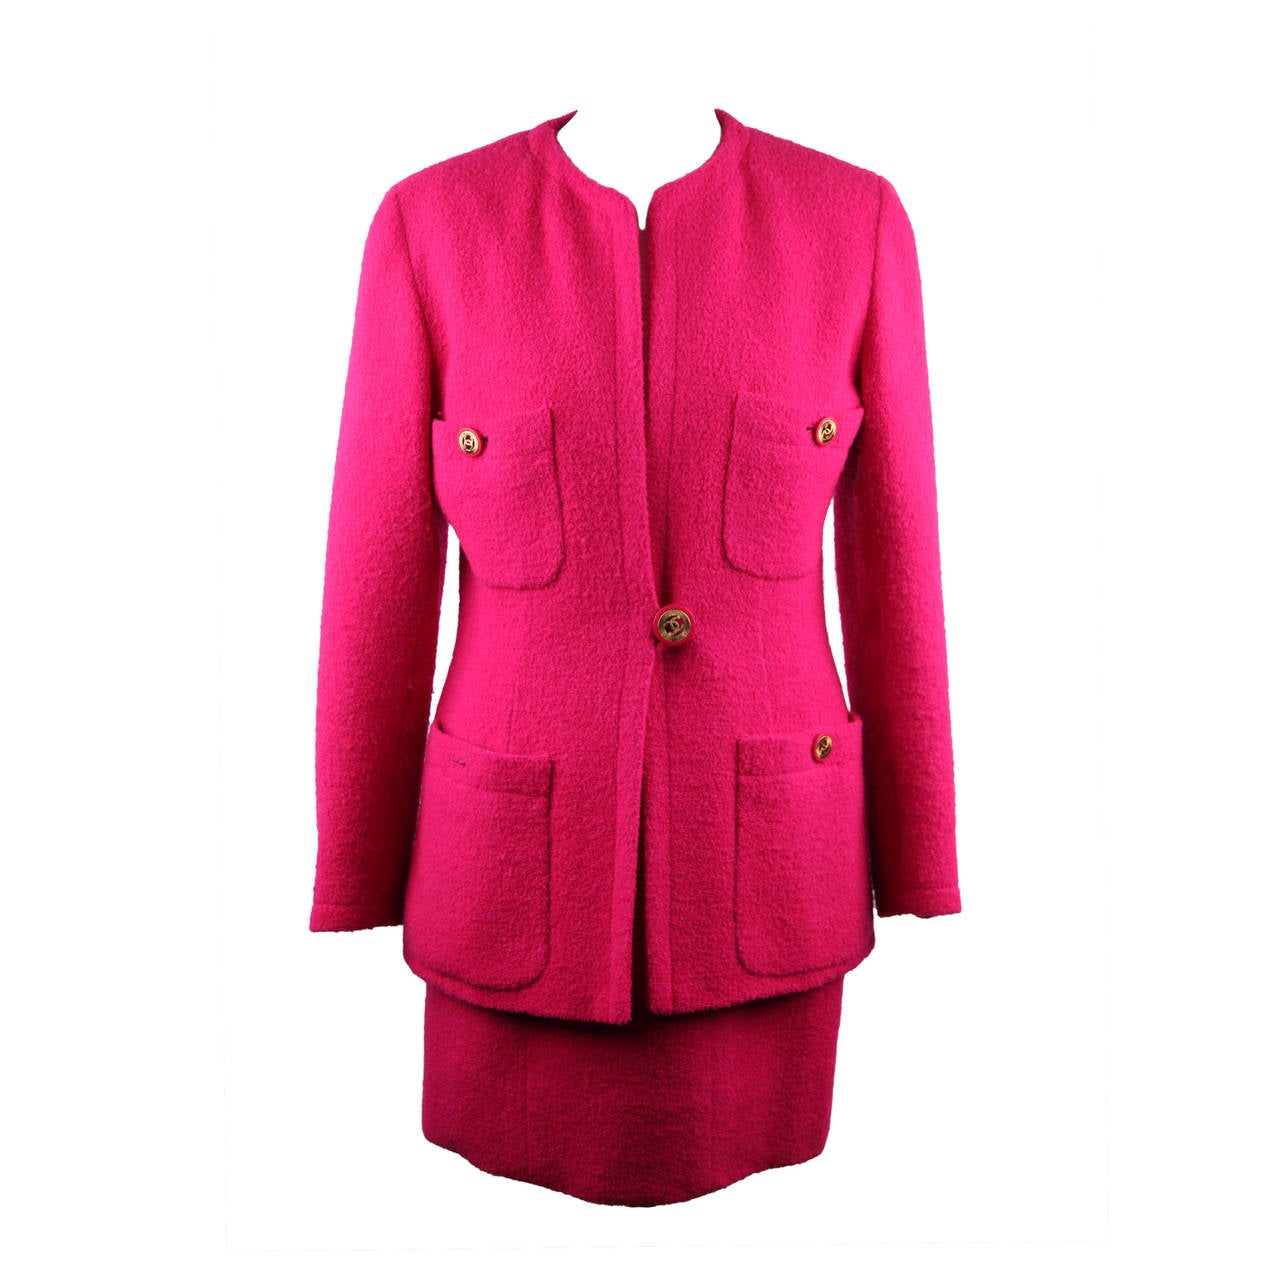 CHANEL BOUTIQUE Vintage Fuchsia Wool SUIT BLAZER Jacket & MINI SKIRT 38 FR